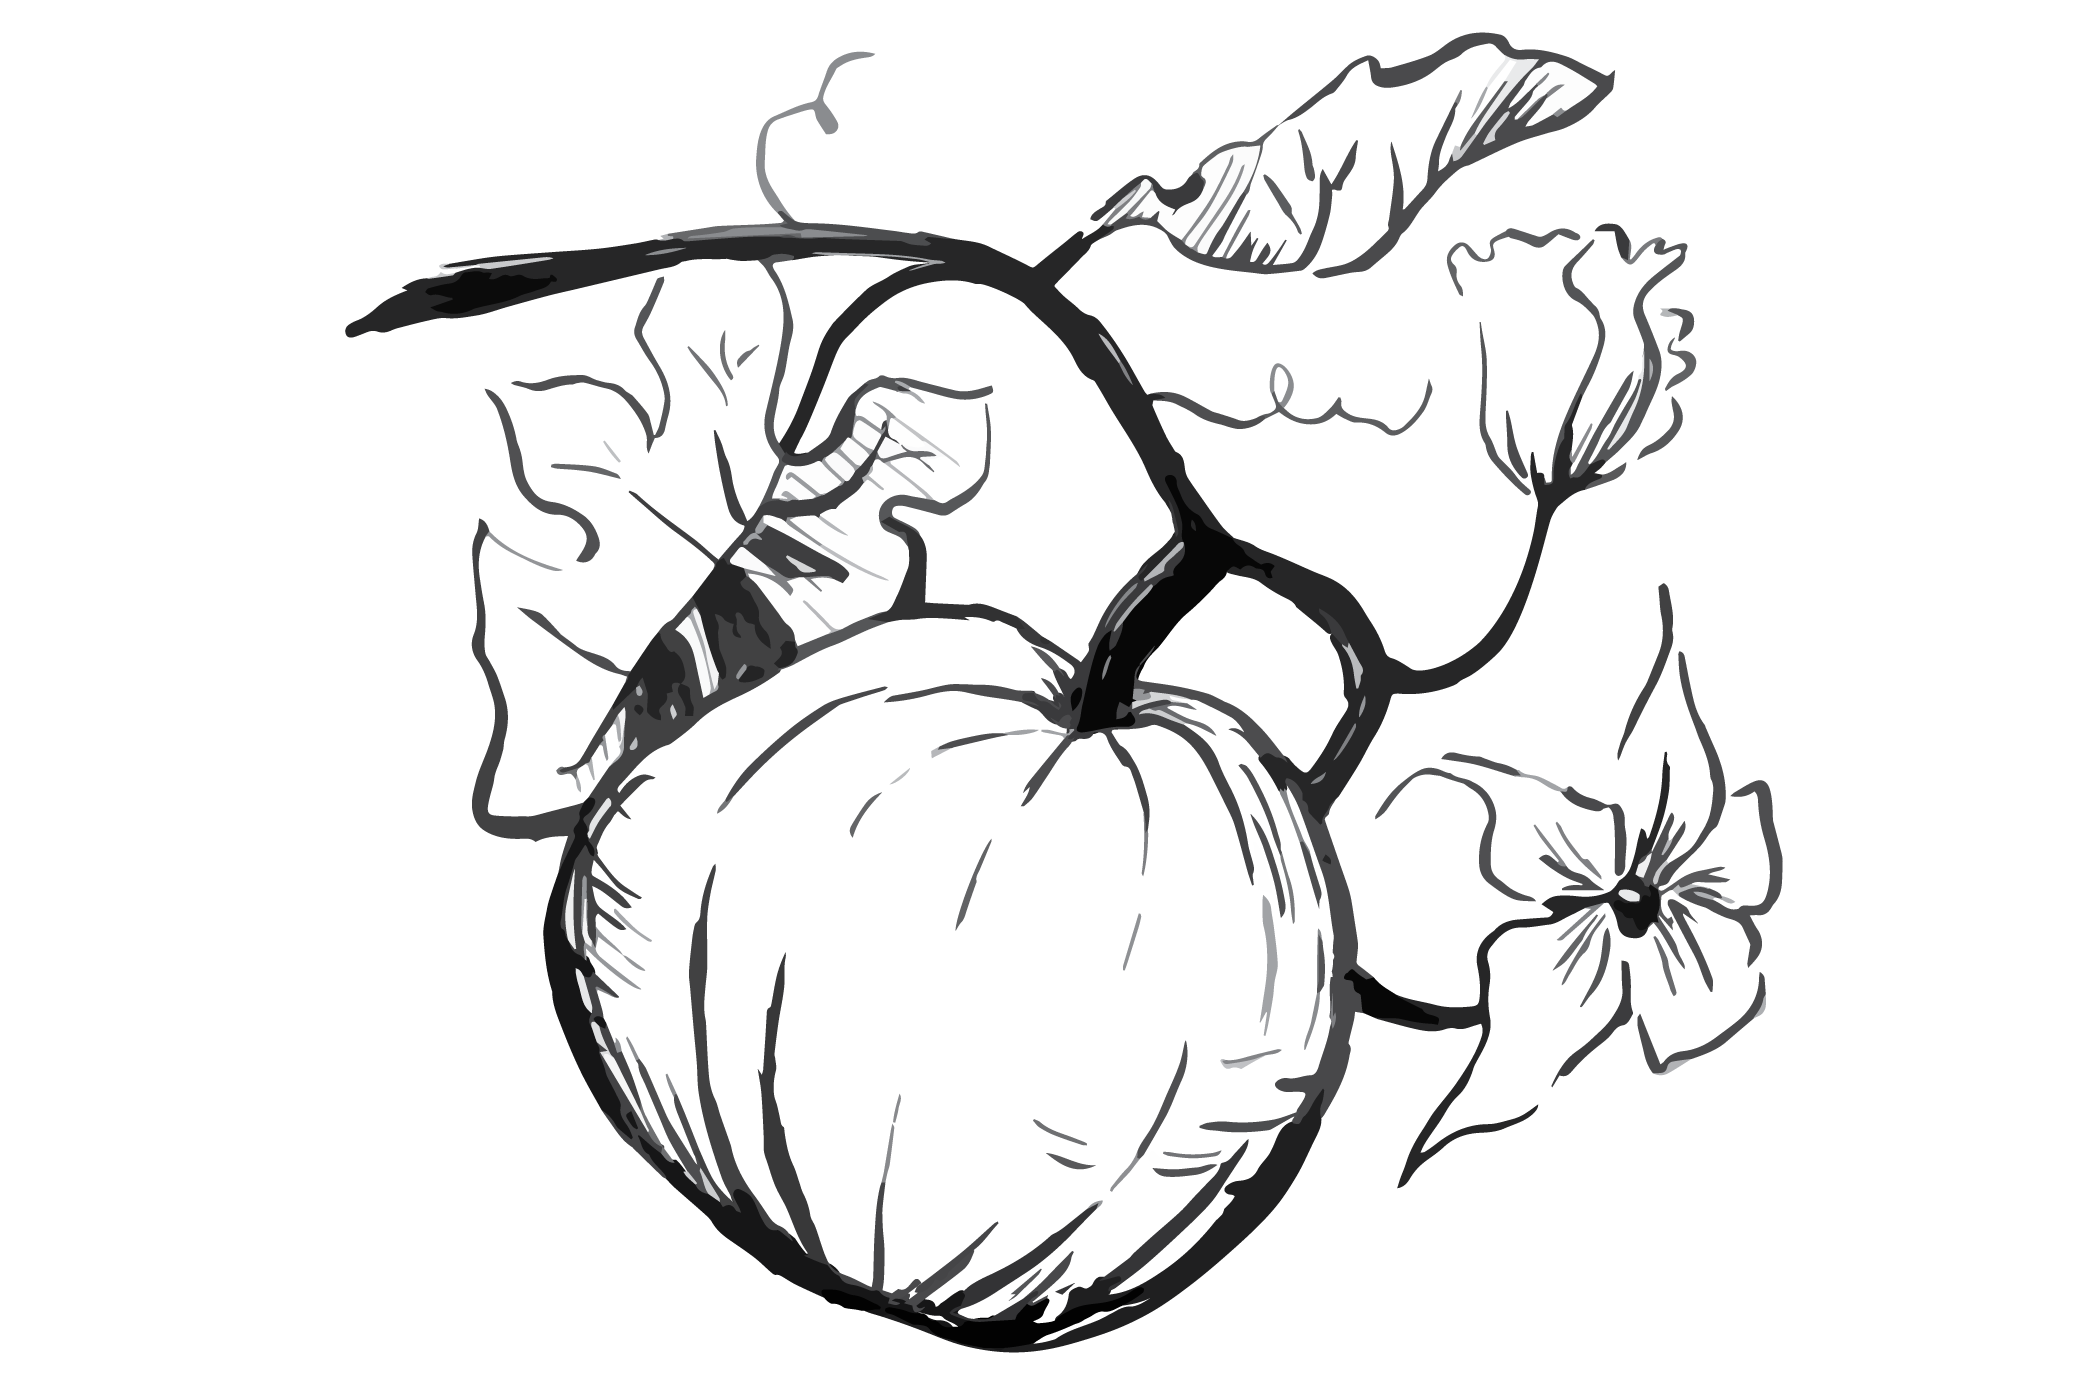 Pumpkin clipart black and white outline clip library stock Pumpkin Seed Drawing at GetDrawings.com | Free for personal use ... clip library stock